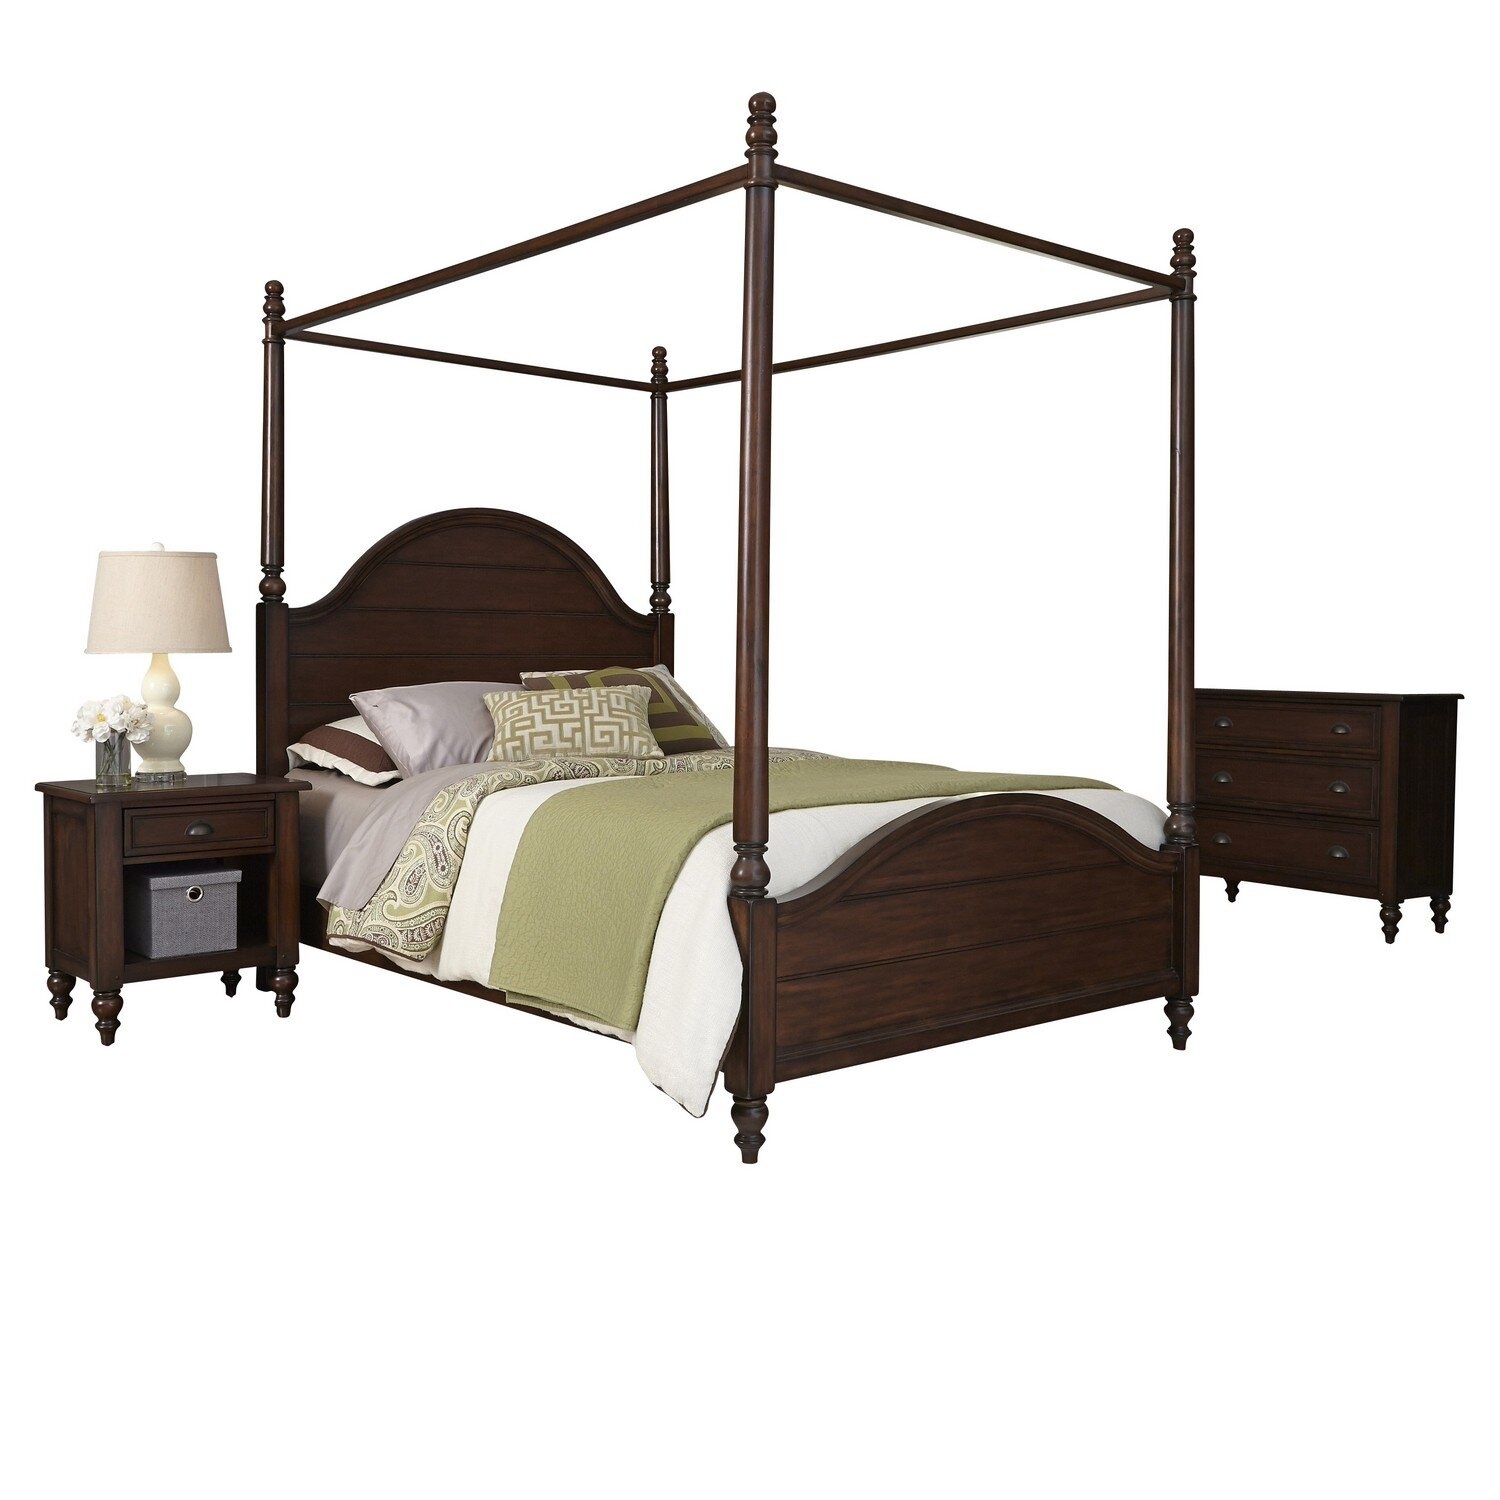 Home styles country comfort canopy 3 piece bedroom set for Home styles bedroom furniture